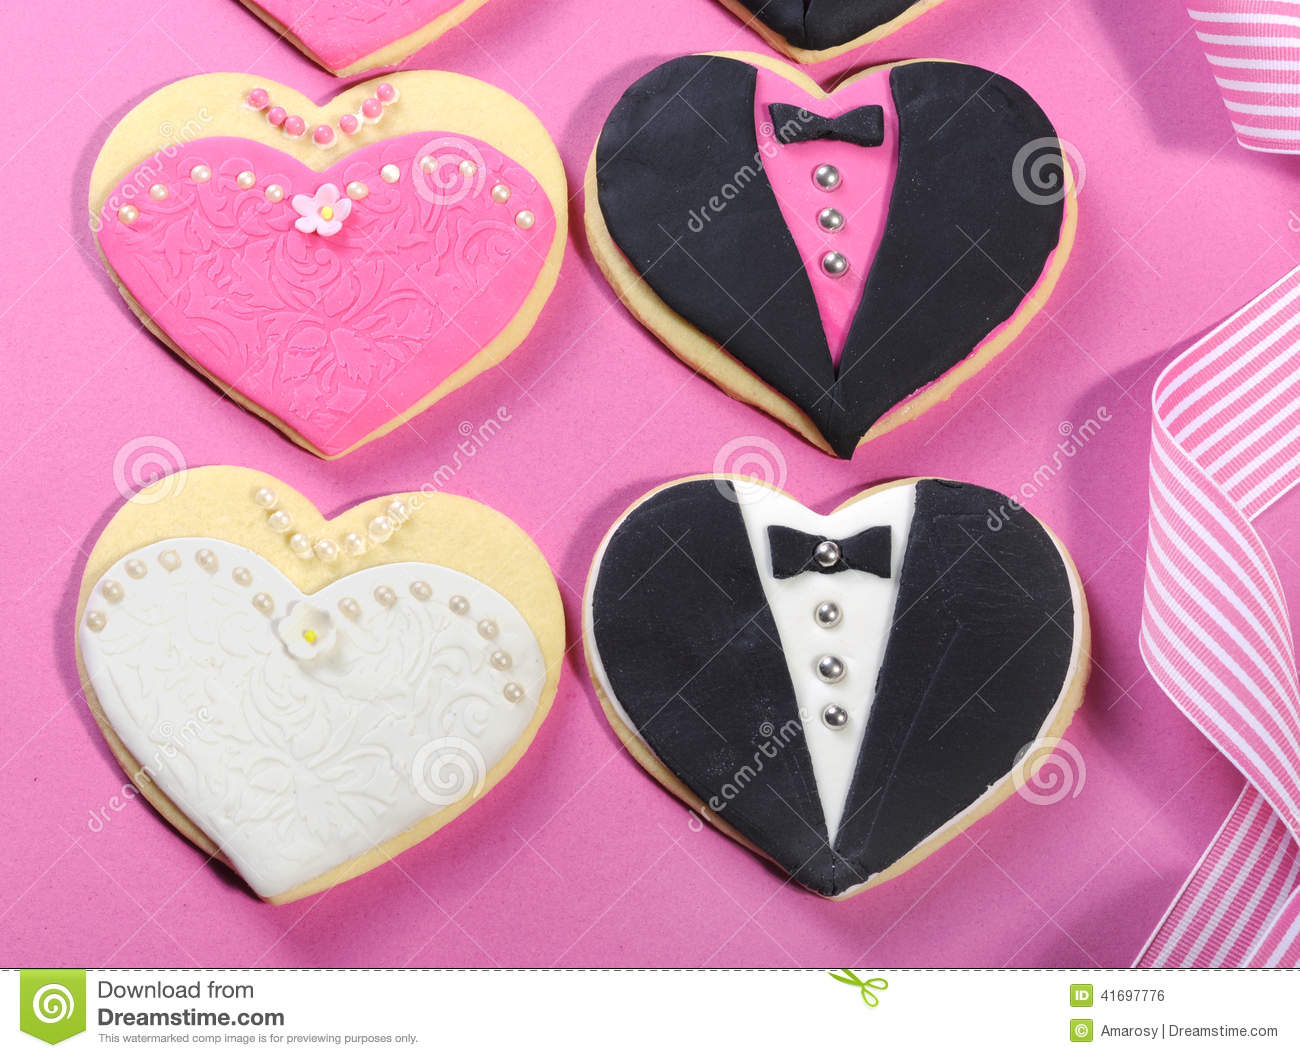 Wedding Party Bridal Cookie Favors Close Up Stock Photo - Image of ...